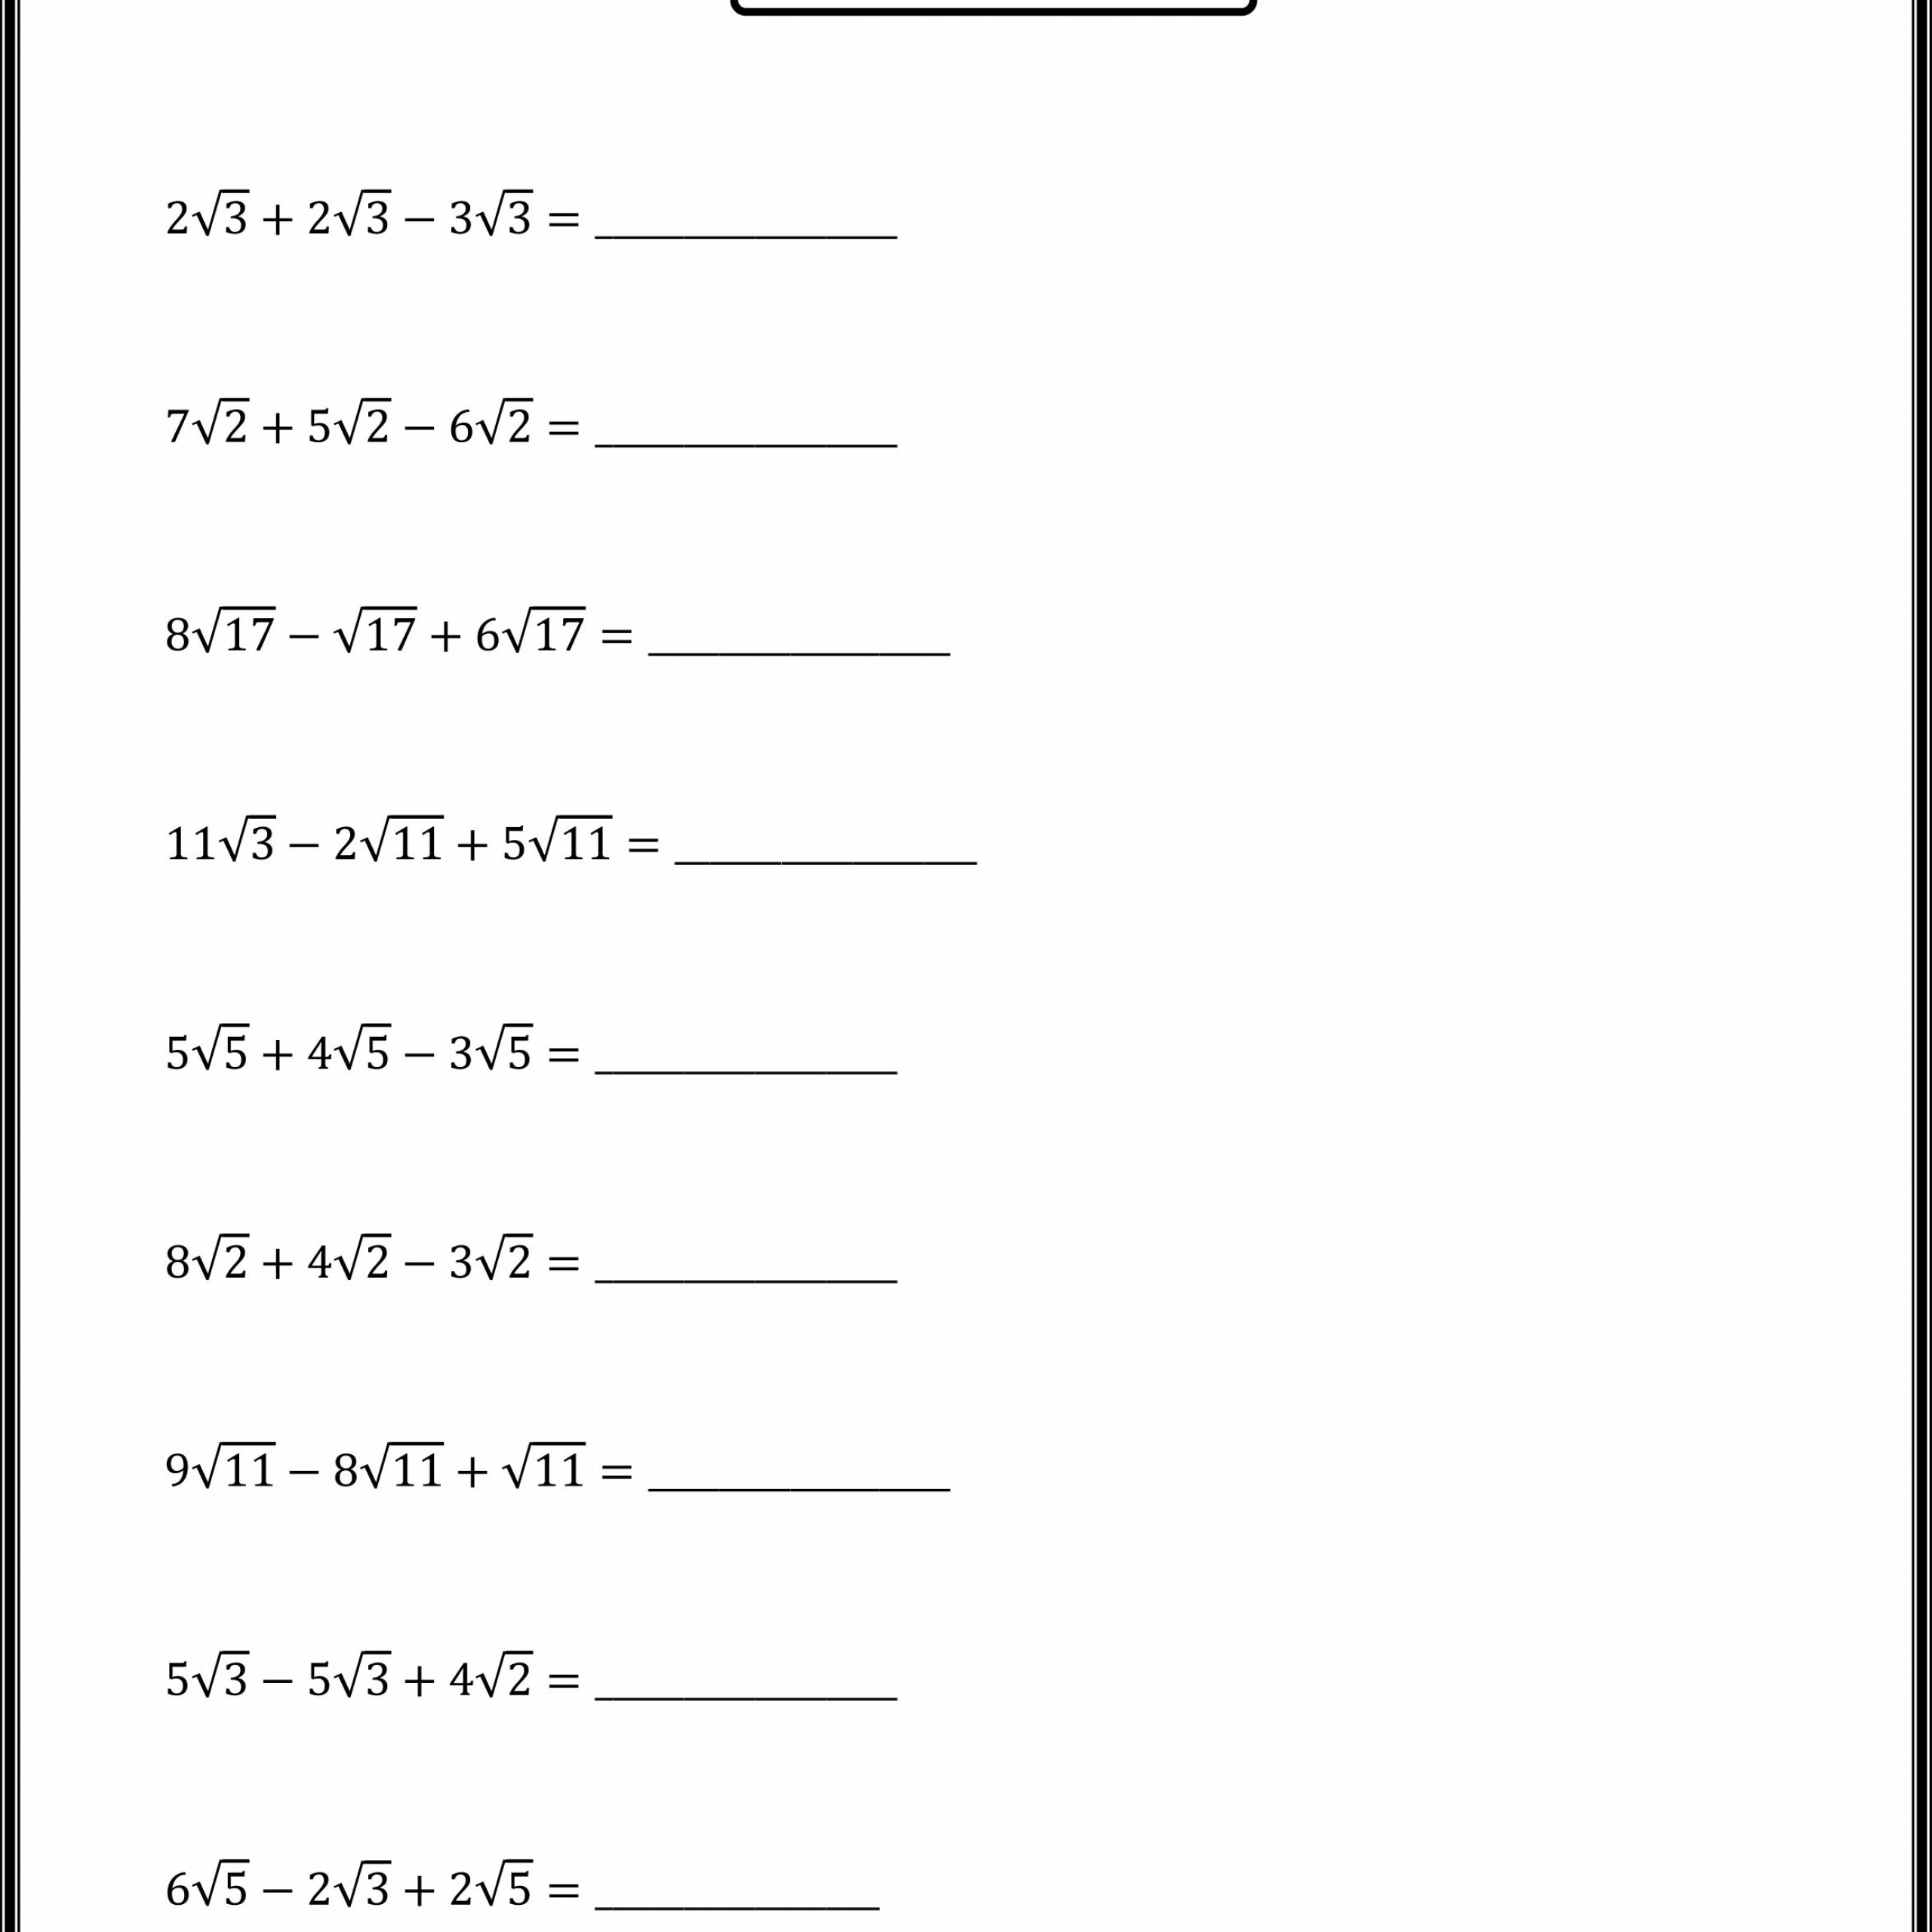 Pin On Educational Work Sheets 4 Kids!